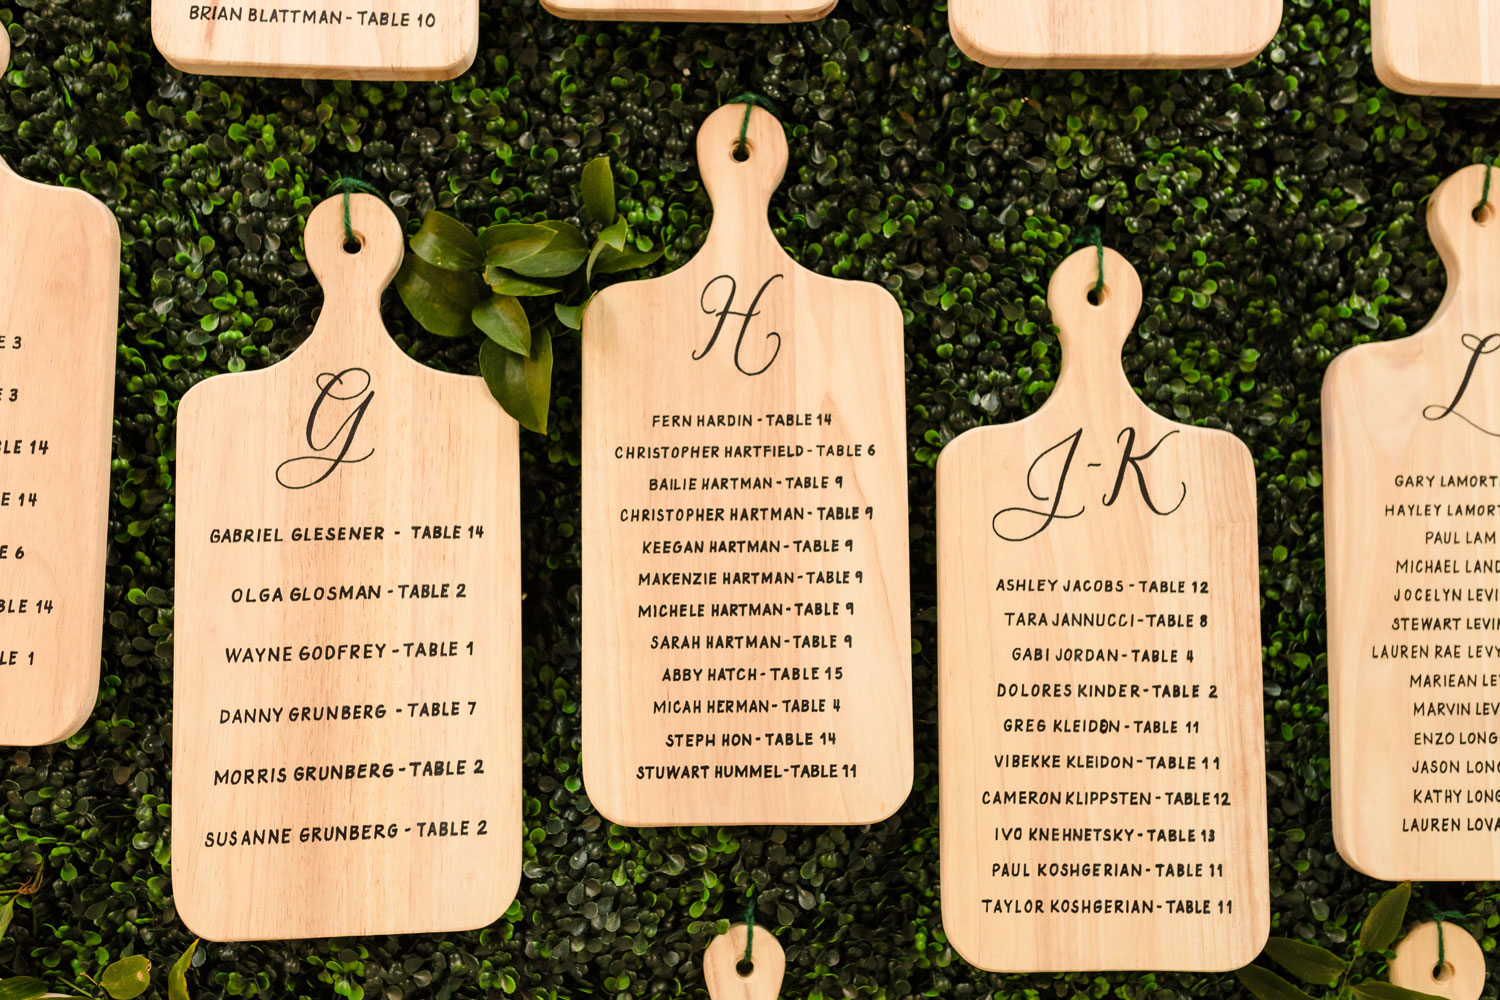 Top Chef Marcel Vigneron and Lauren Rae Levy real wedding planned by Tessa Lyn Events cutting board seating chart